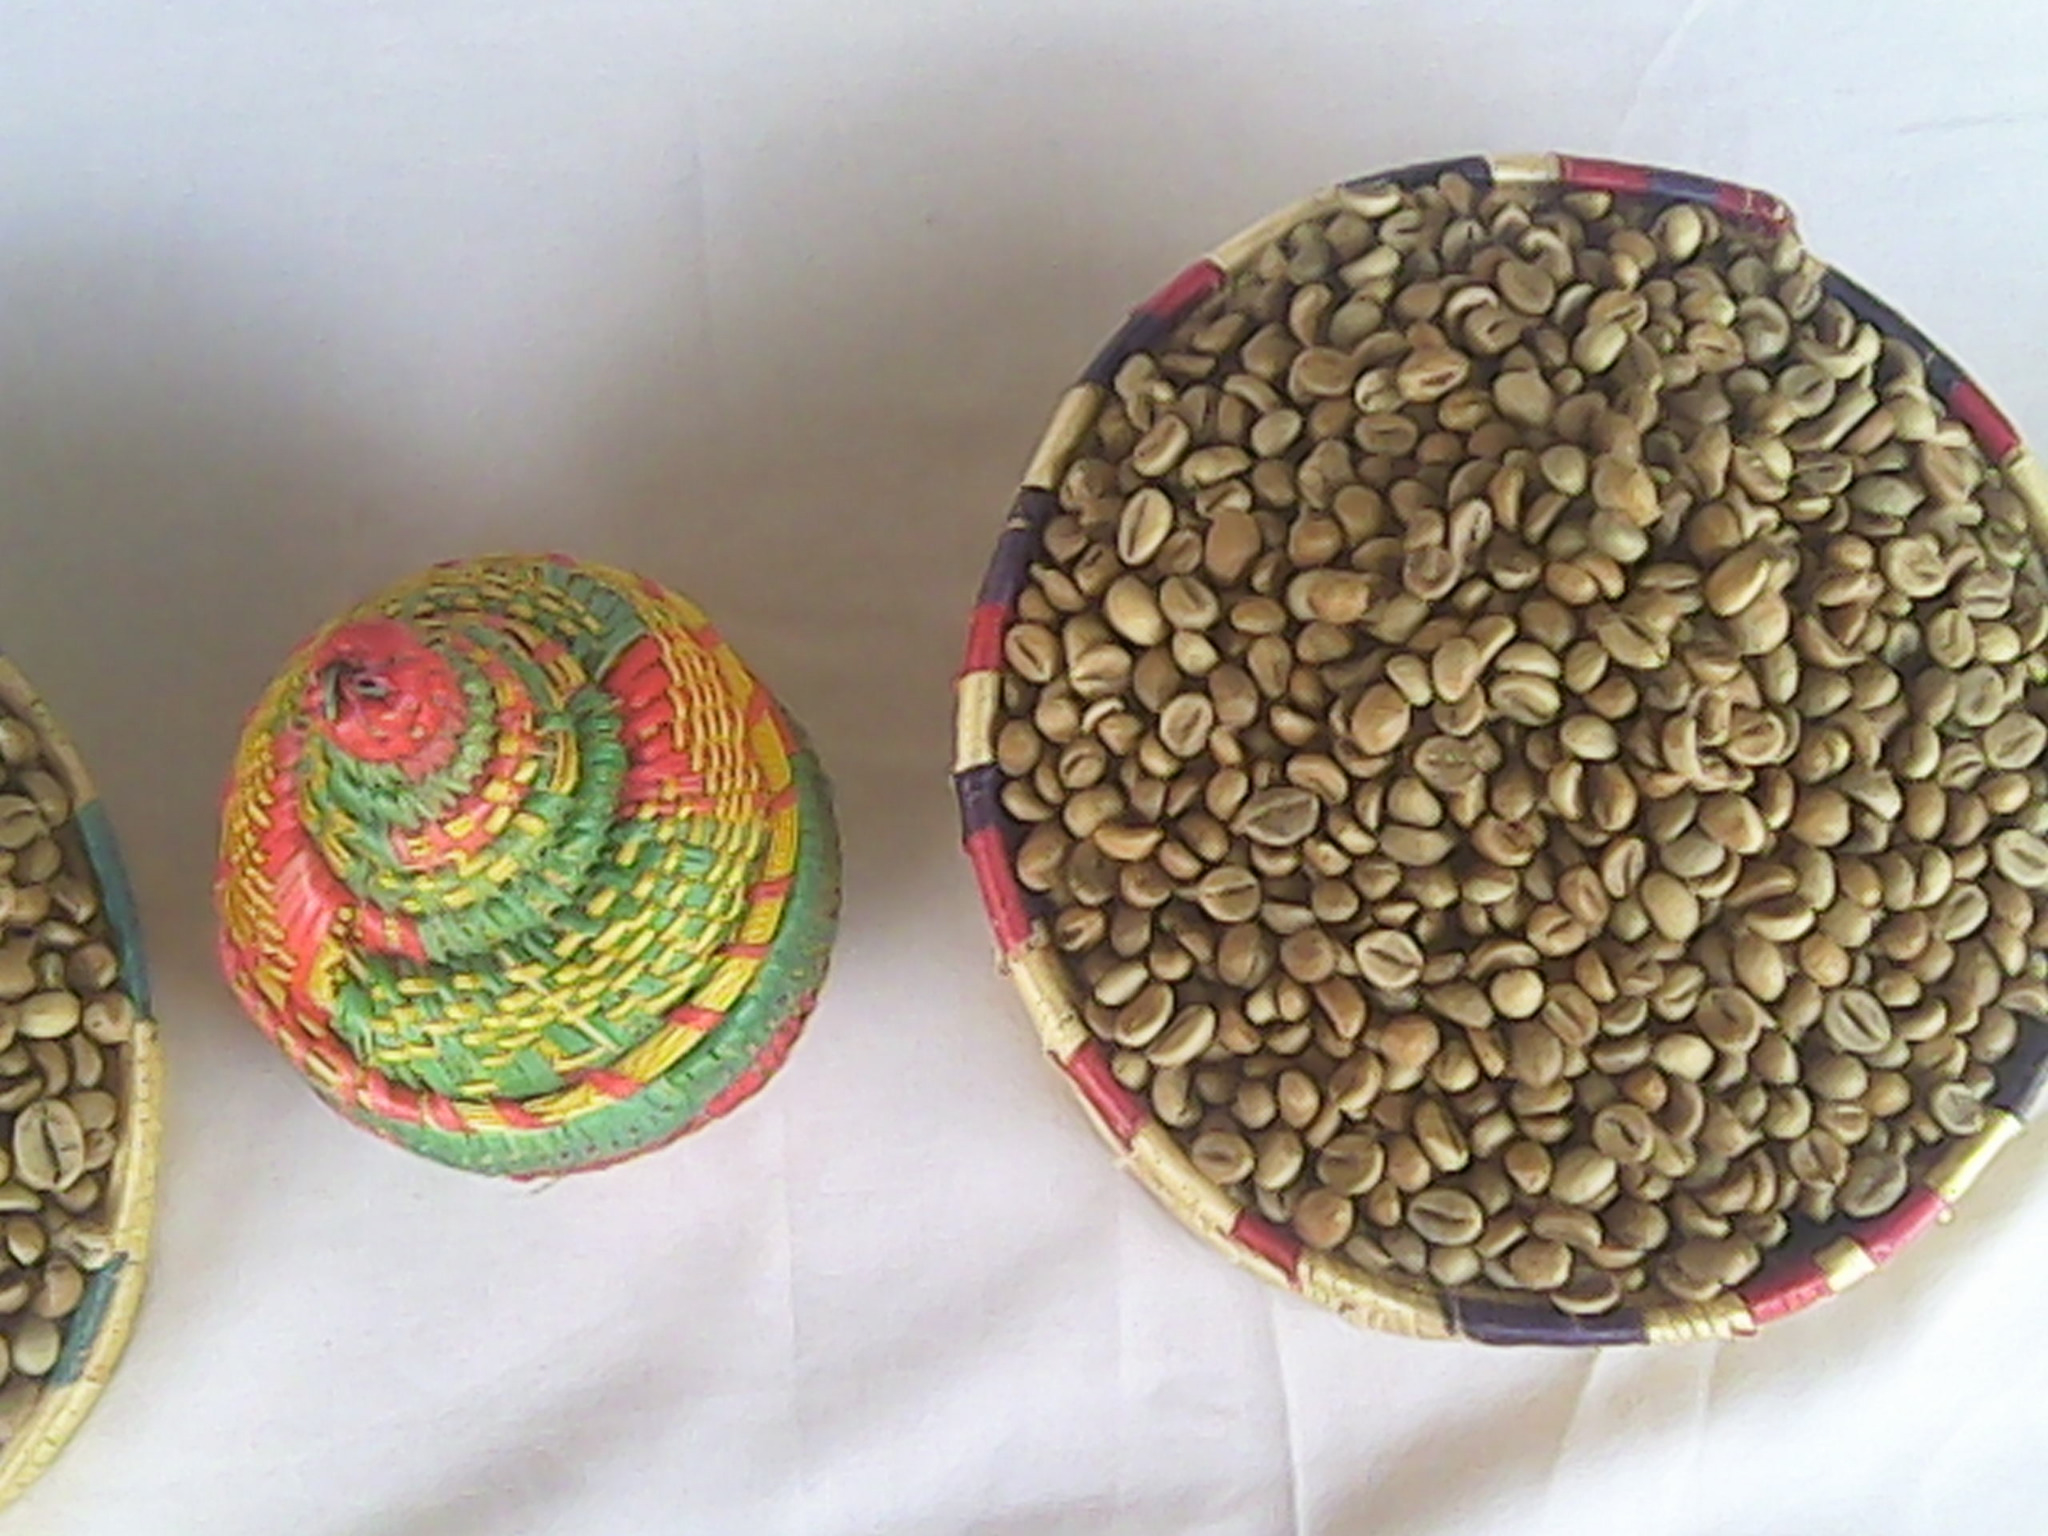 Coffee production: Cameroonian production continues to drop off